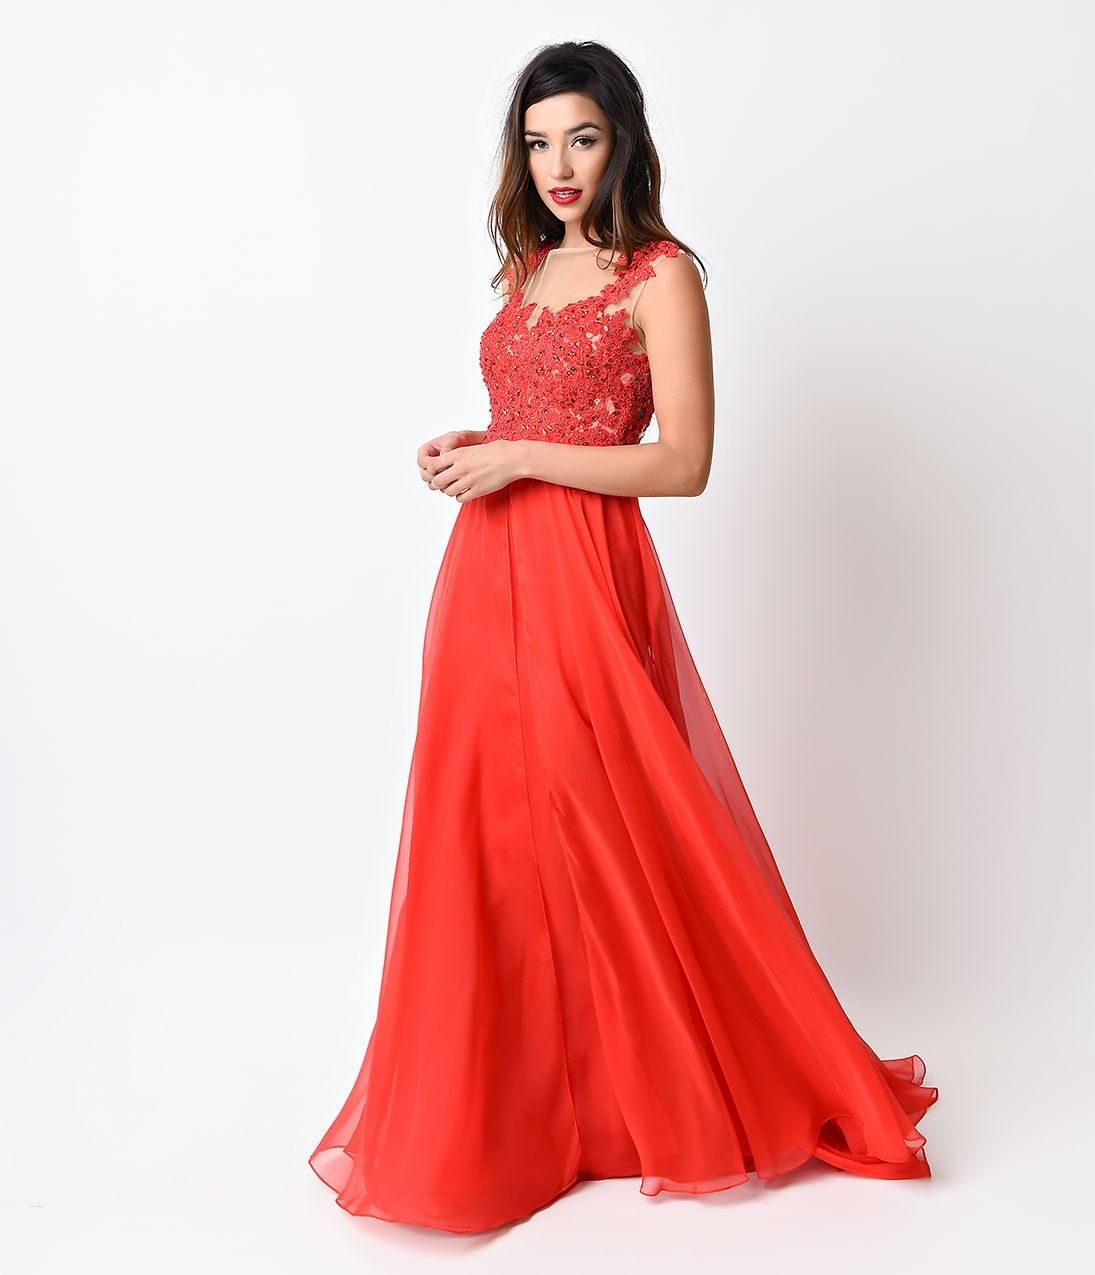 Red Beaded Lace Mesh Cap Sleeve Long Dress for Prom 2017 | Prom ...